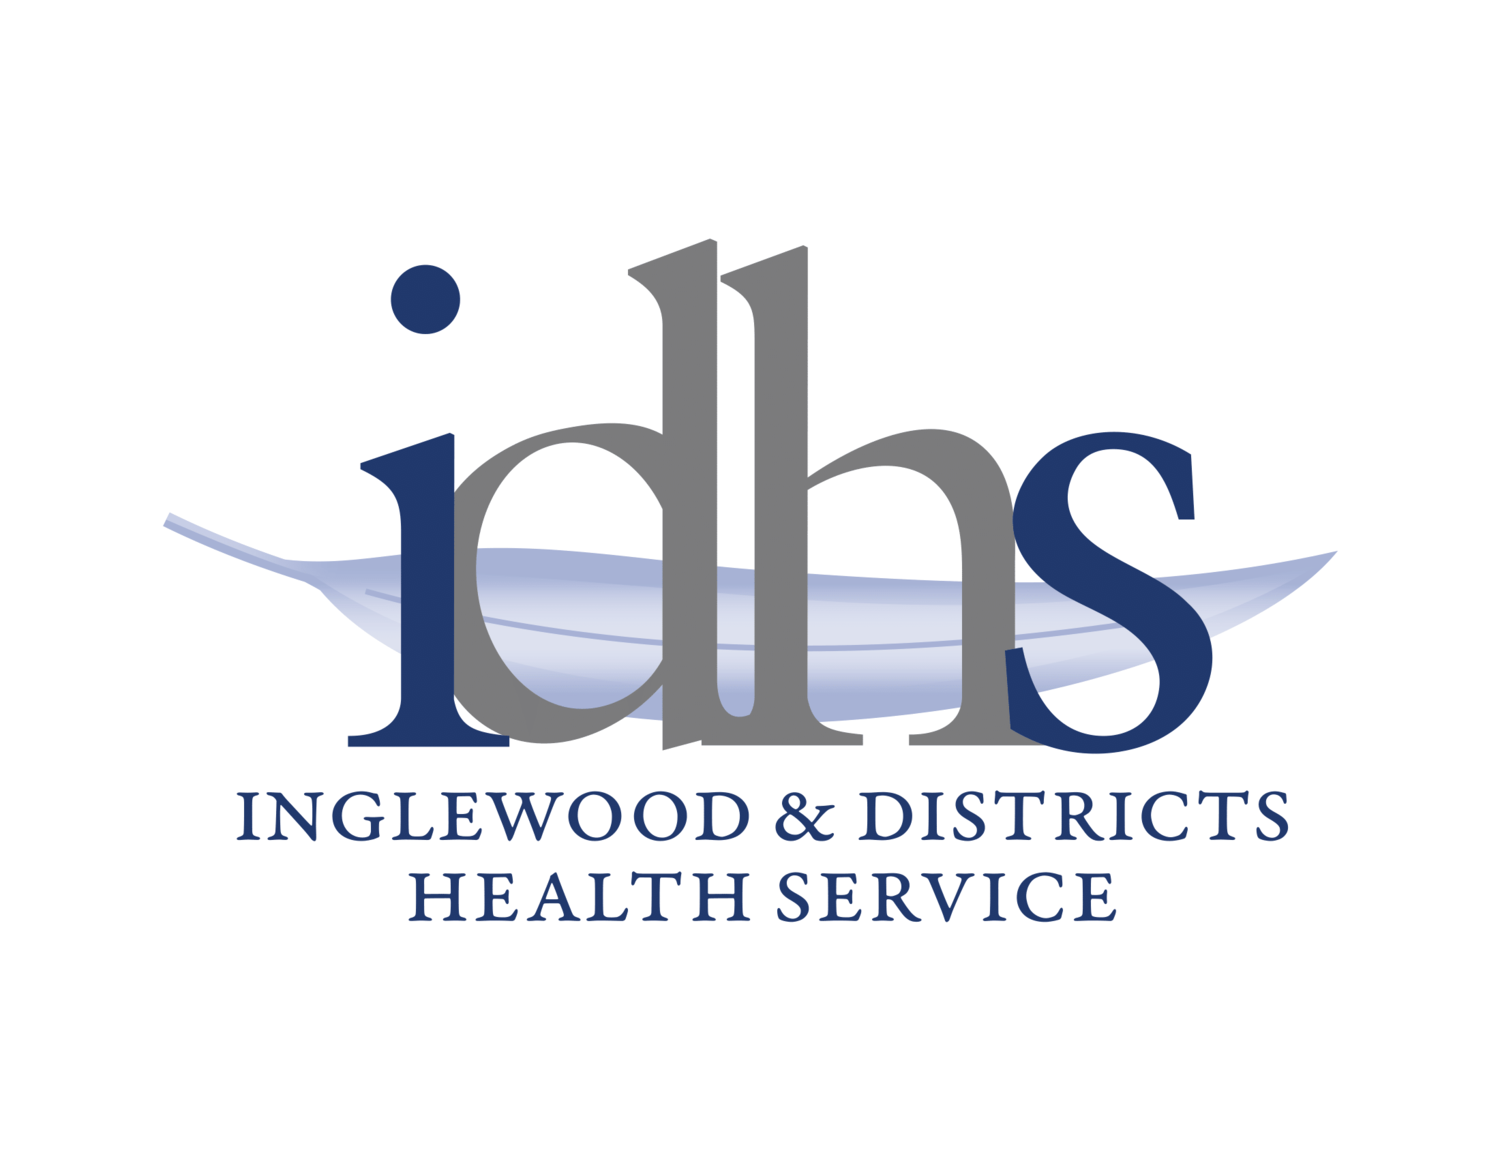 Inglewood & Districts Health Service